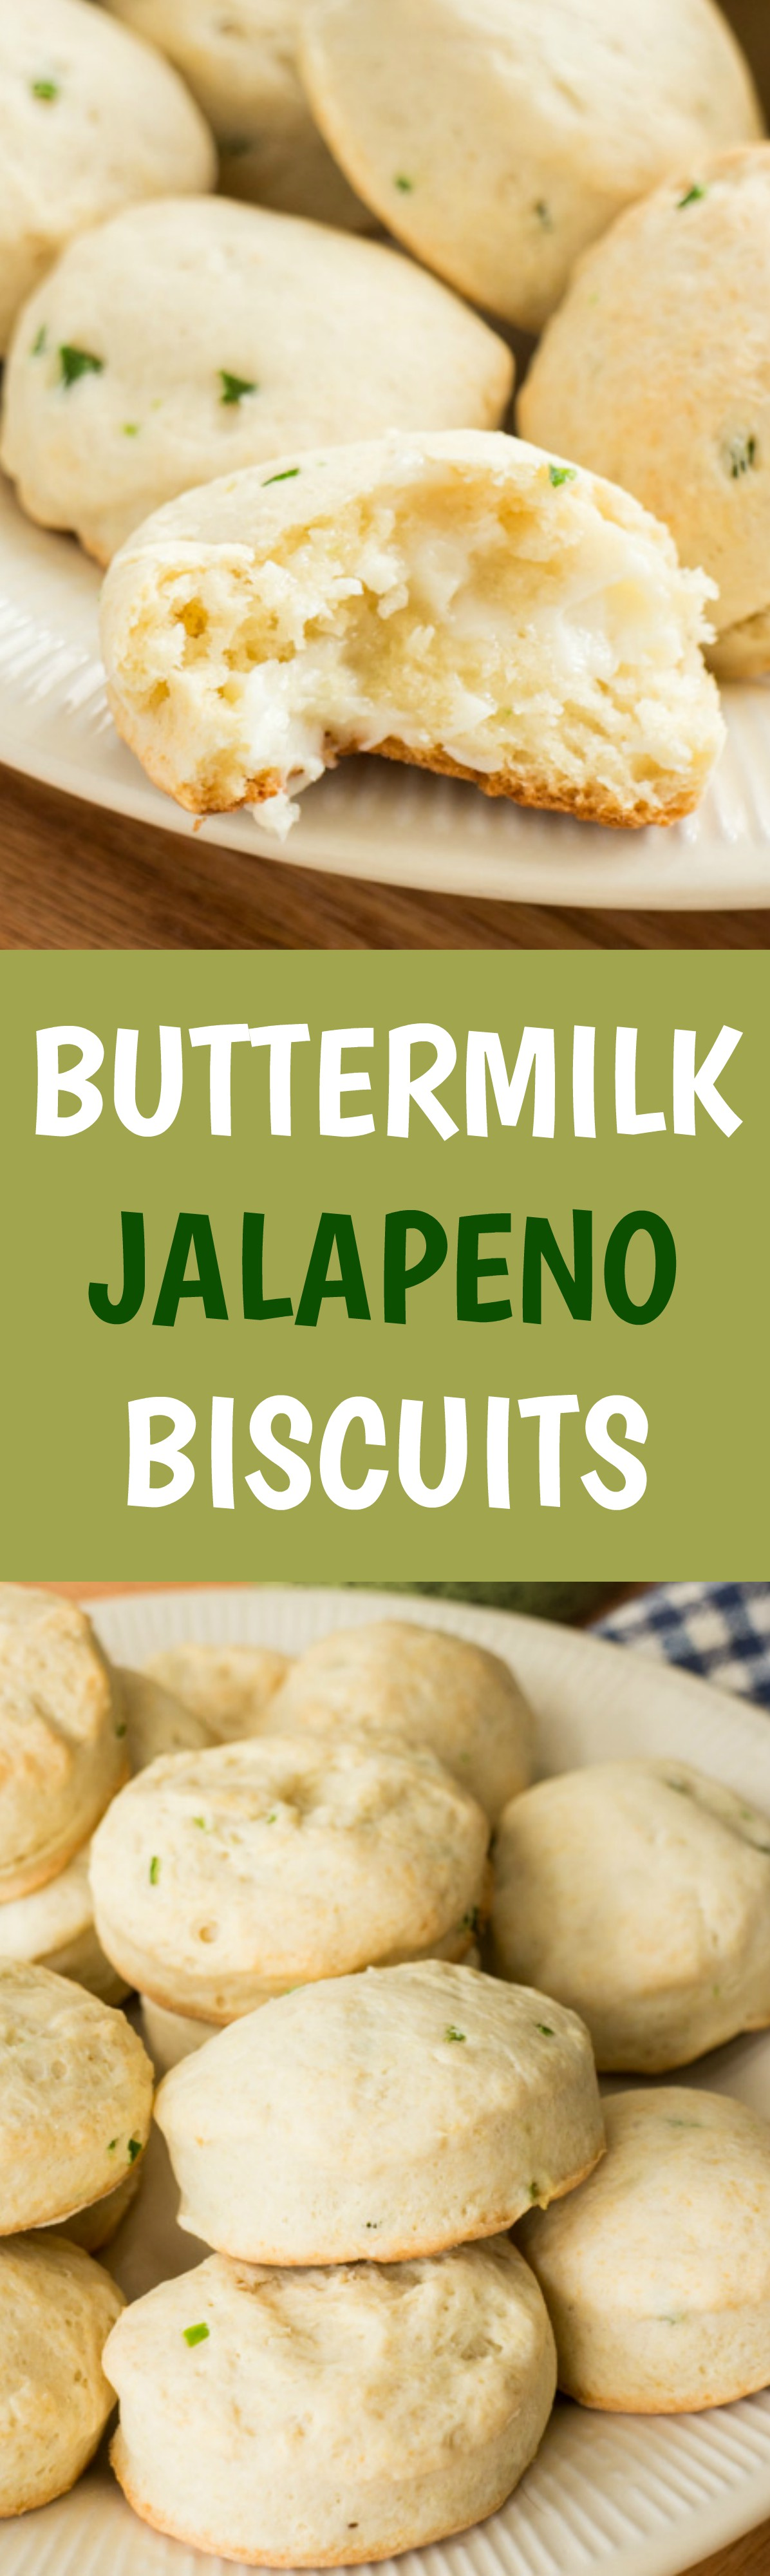 Delicious Buttermilk Jalapeno Biscuits are easy to make with this recipe that includes step by step pictures.  These Southern style homemade biscuits are made from scratch with diced up jalapeno peppers.  They are best served with a warm comfort food casserole!